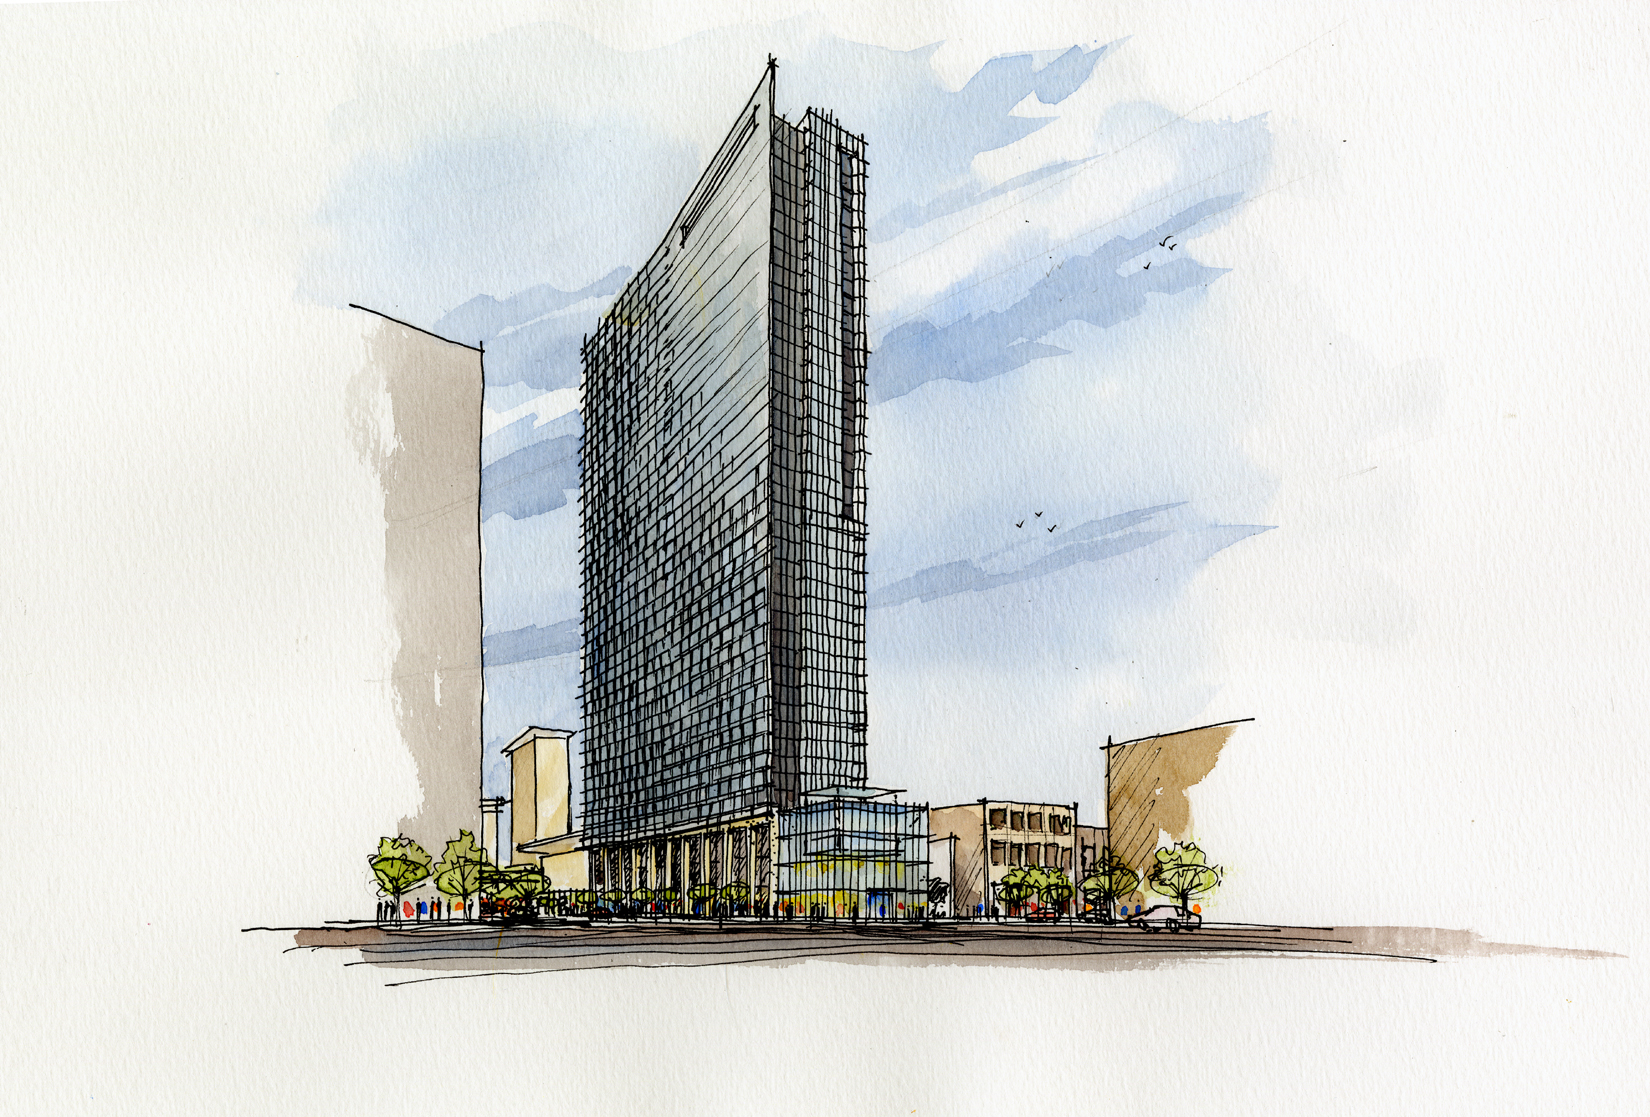 Rendering of Headquarters Hotel in McCormick Place entertainment district